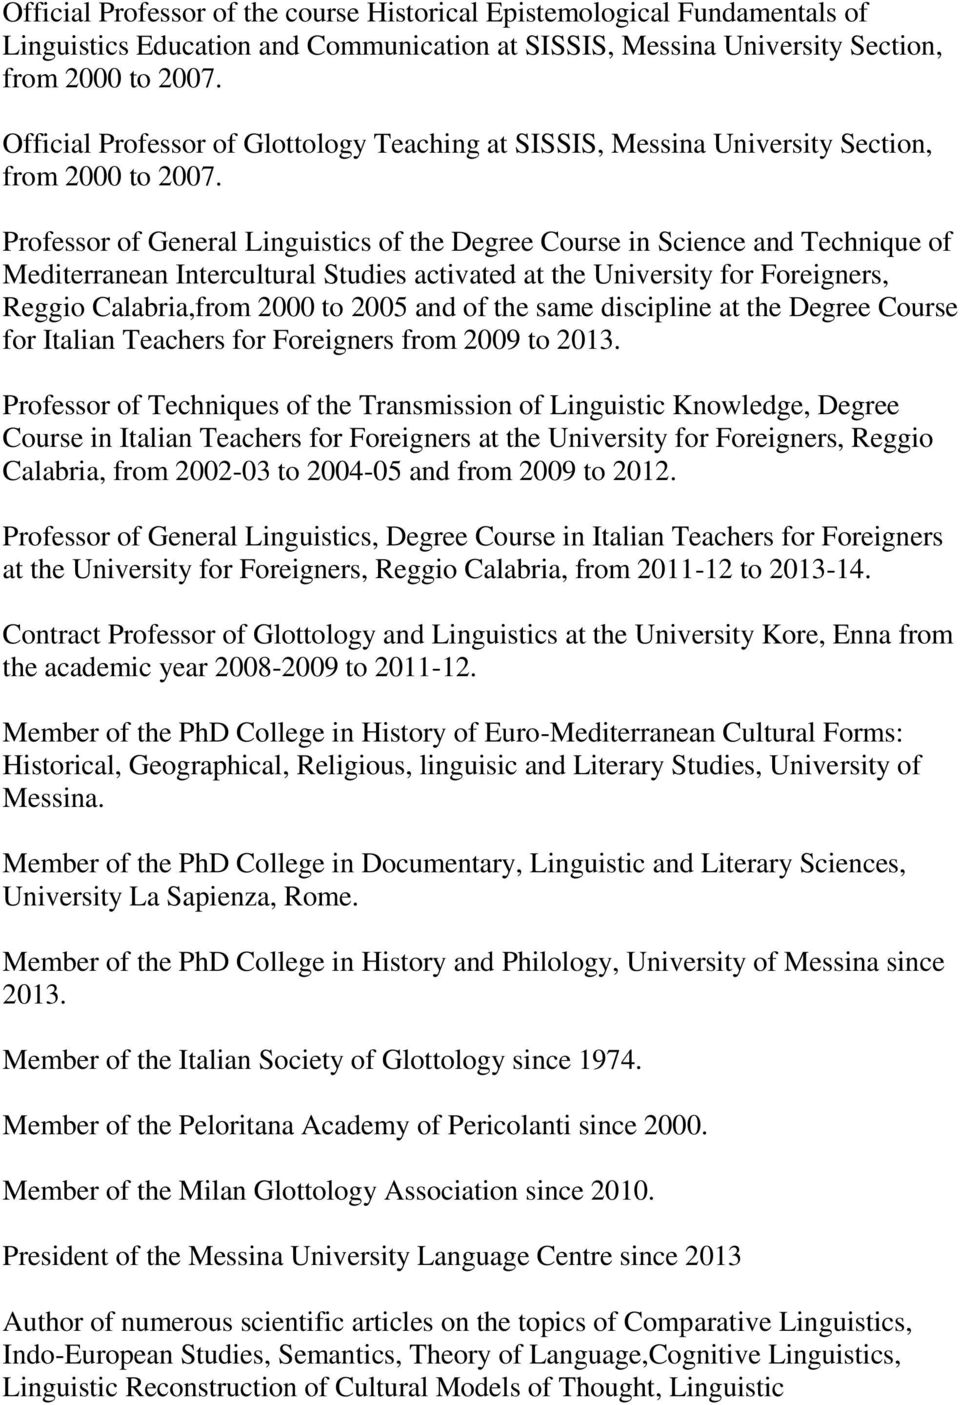 Professor of General Linguistics of the Degree Course in Science and Technique of Mediterranean Intercultural Studies activated at the University for Foreigners, Reggio Calabria,from 2000 to 2005 and